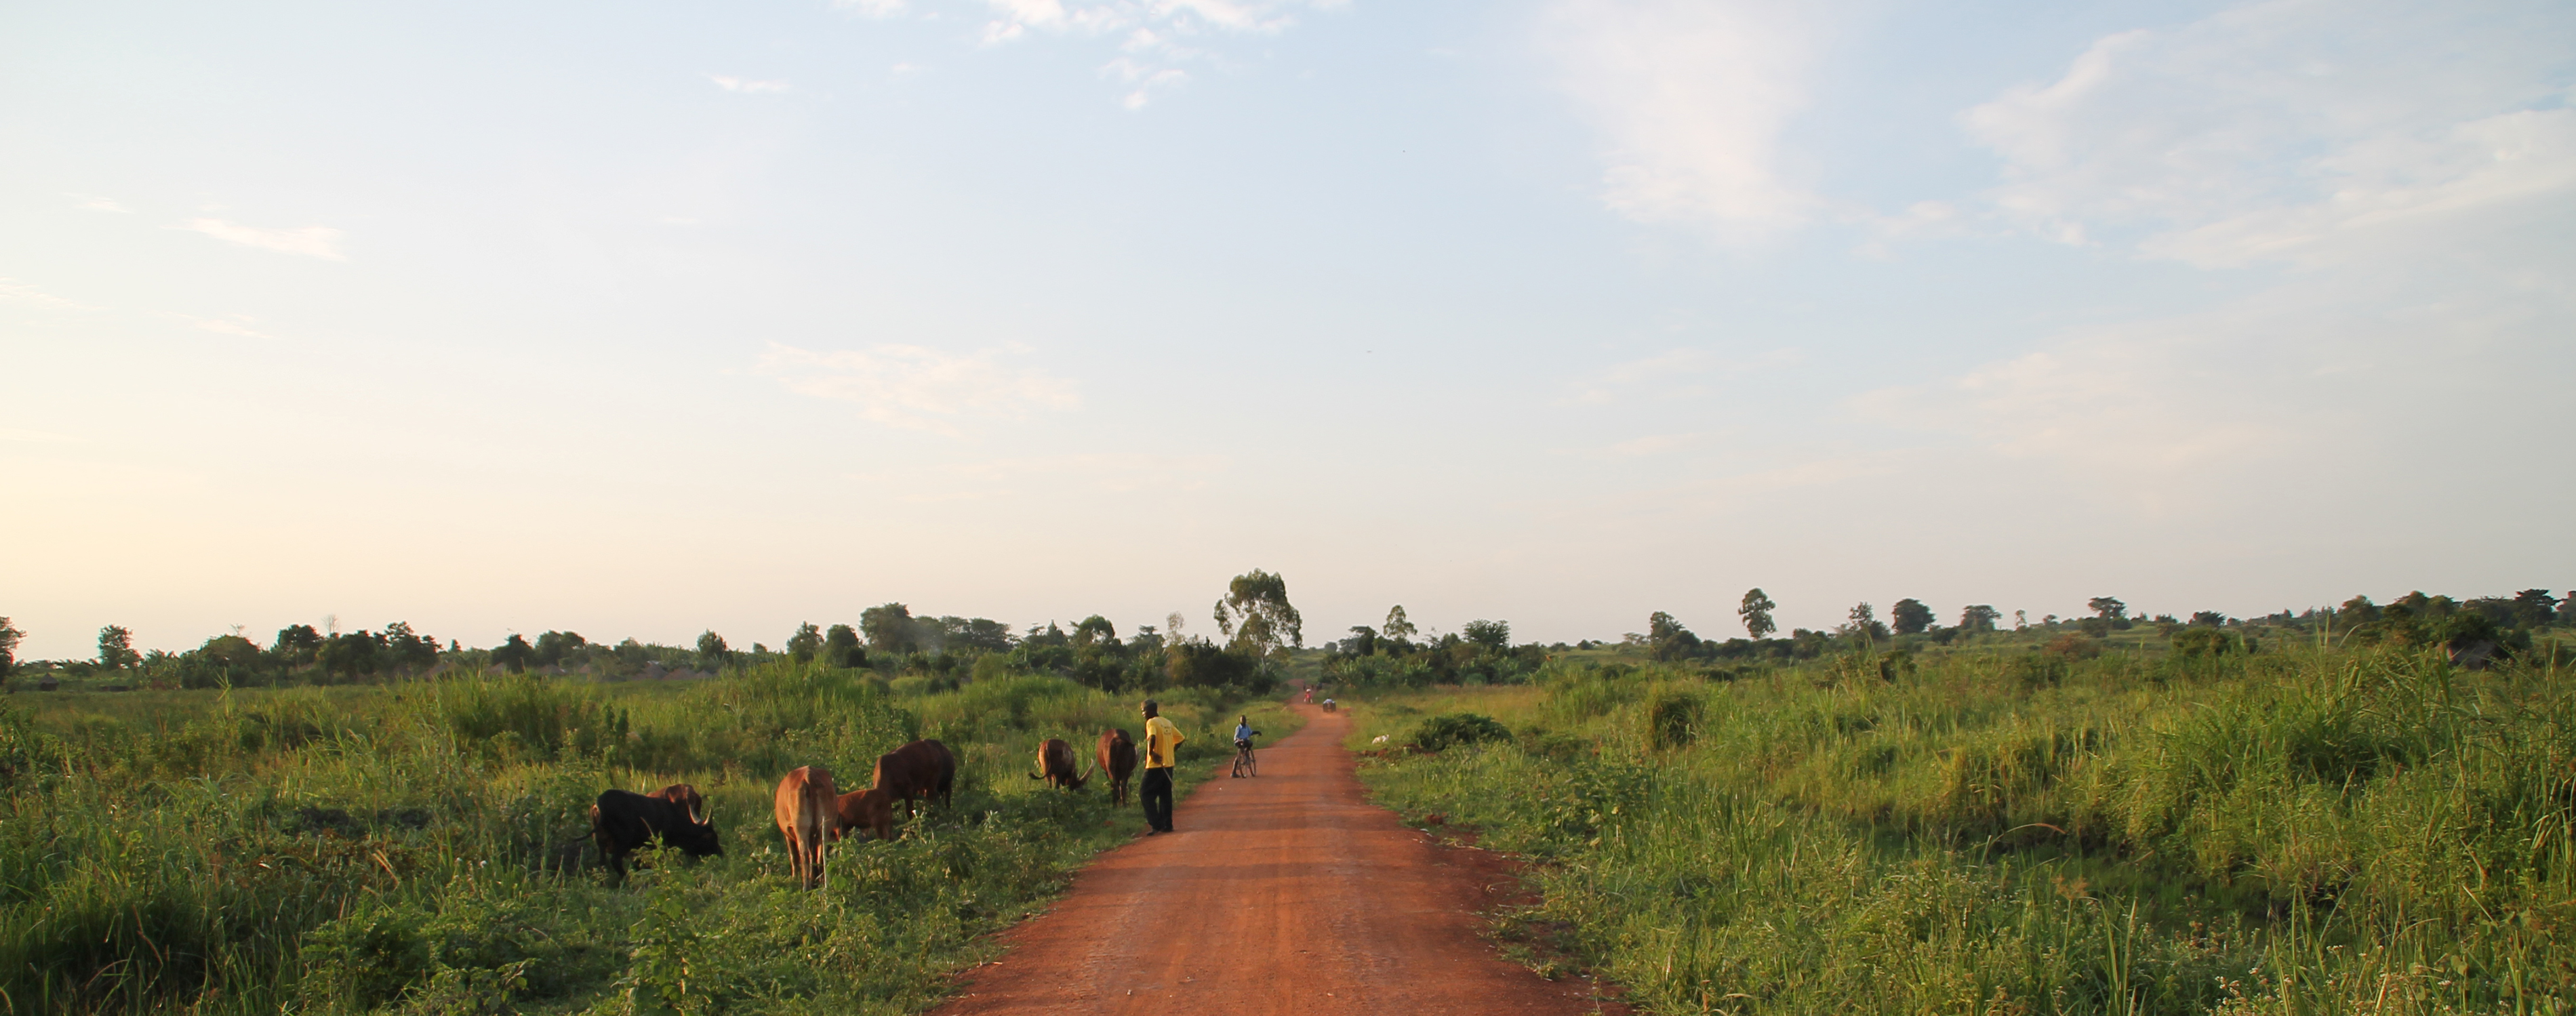 Image of dirt road and open sky